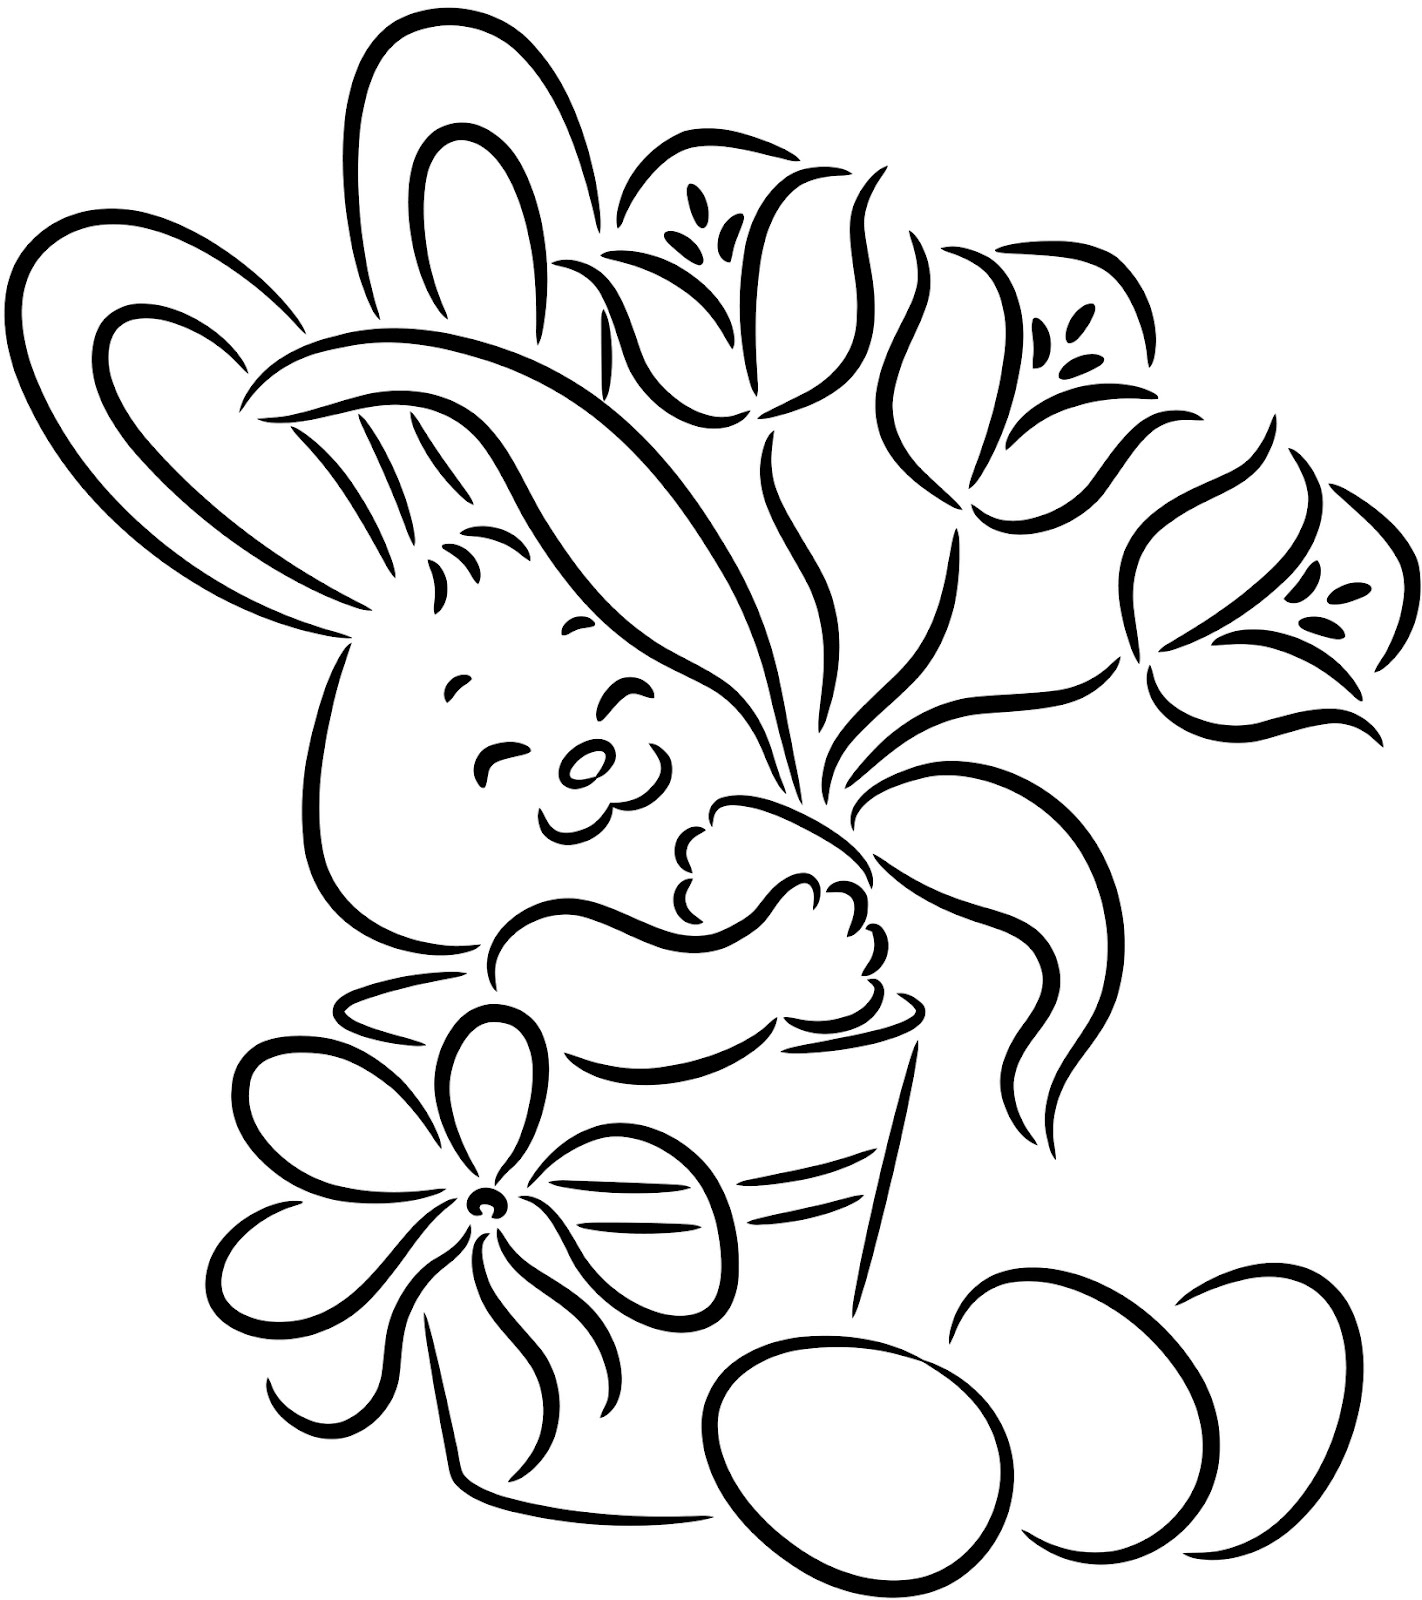 bunny picture to color bunny rabbit coloring pages to download and print for free picture bunny to color